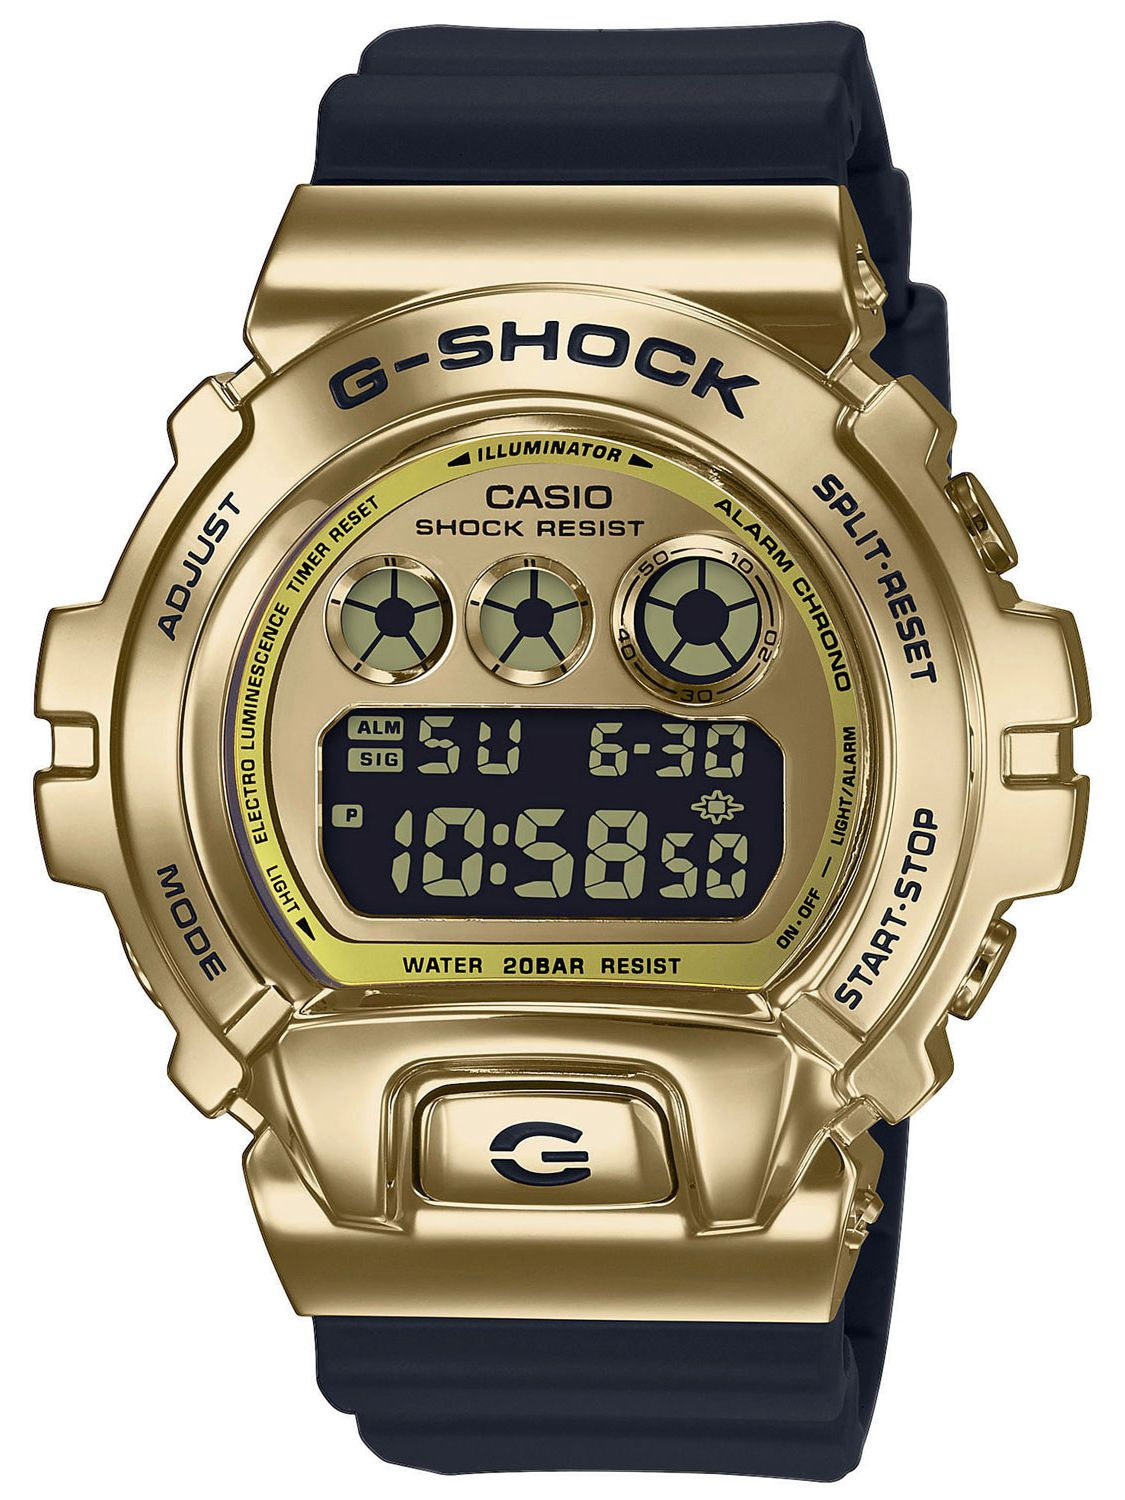 Casio Gm 6900g 9er G Shock Classic Digital Herrenuhr Gold Schwarz